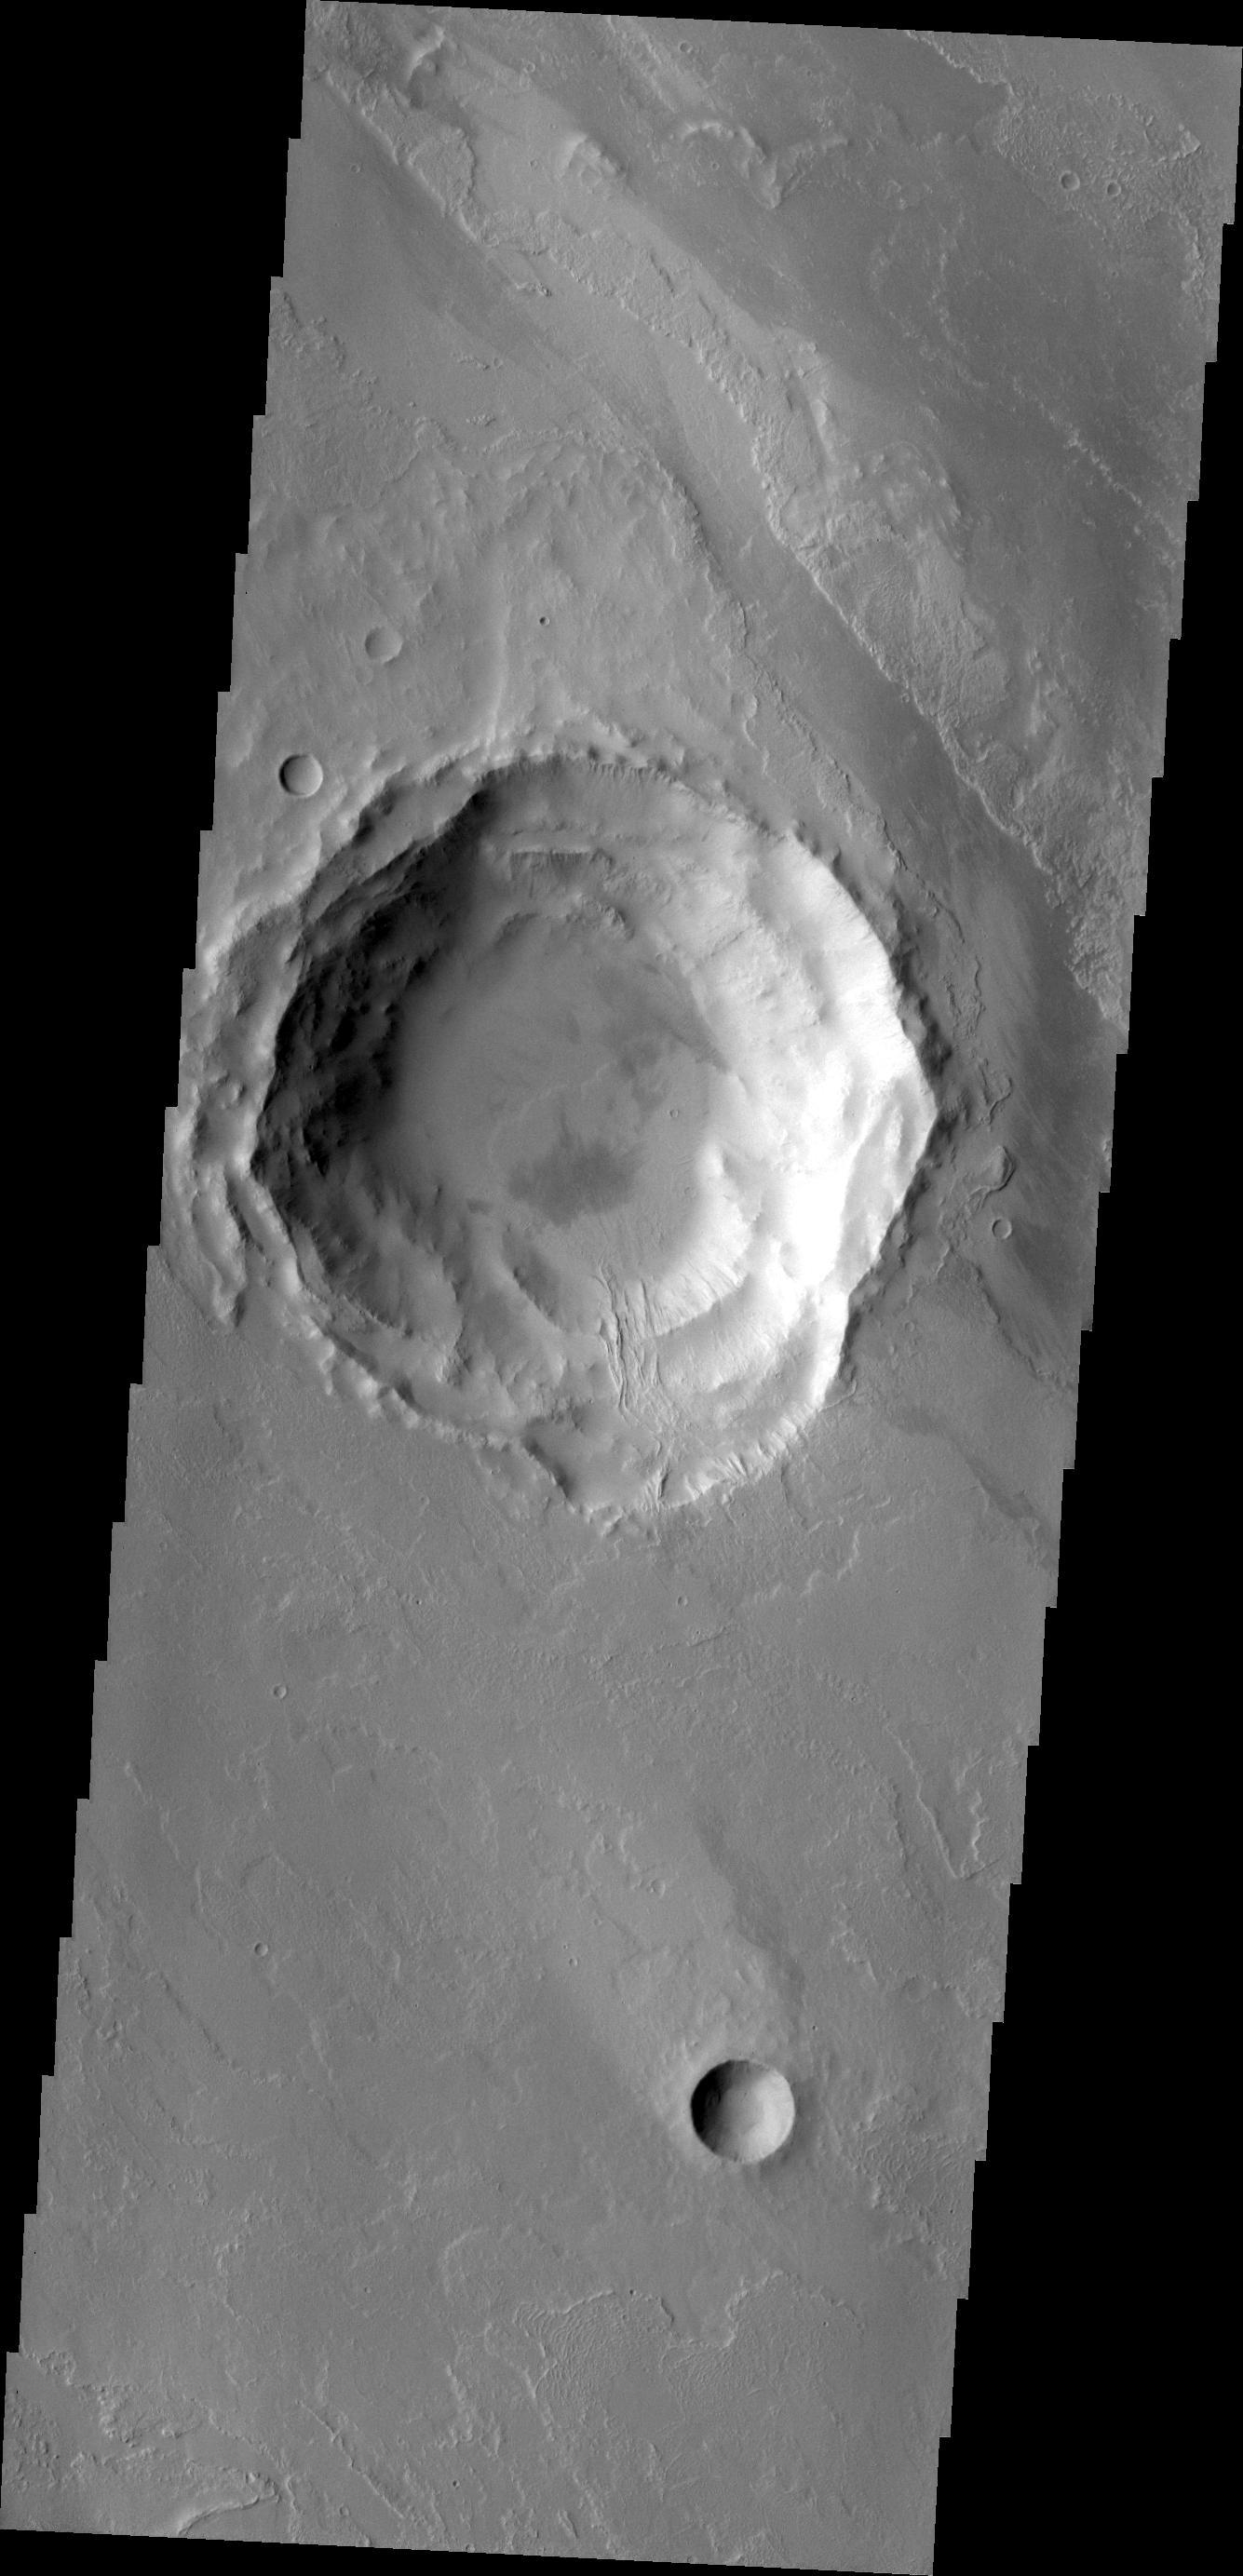 This image from NASA's 2001 Mars Odyssey shows a lava flow that topped the rim of an impact crater and flowed down to the floor of the crater.